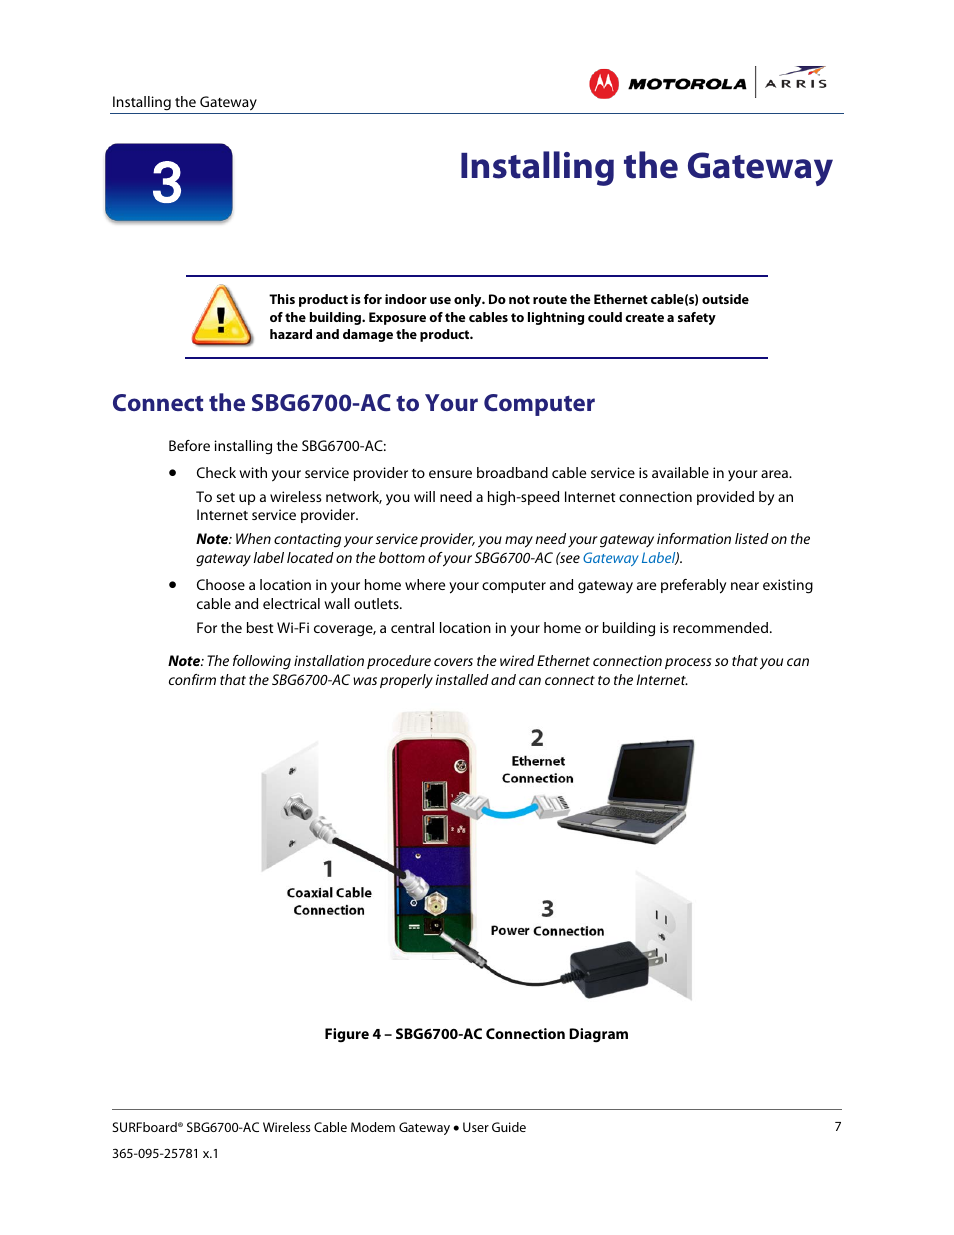 Installing the gateway, Connect the sbg6700-ac to your computer ...